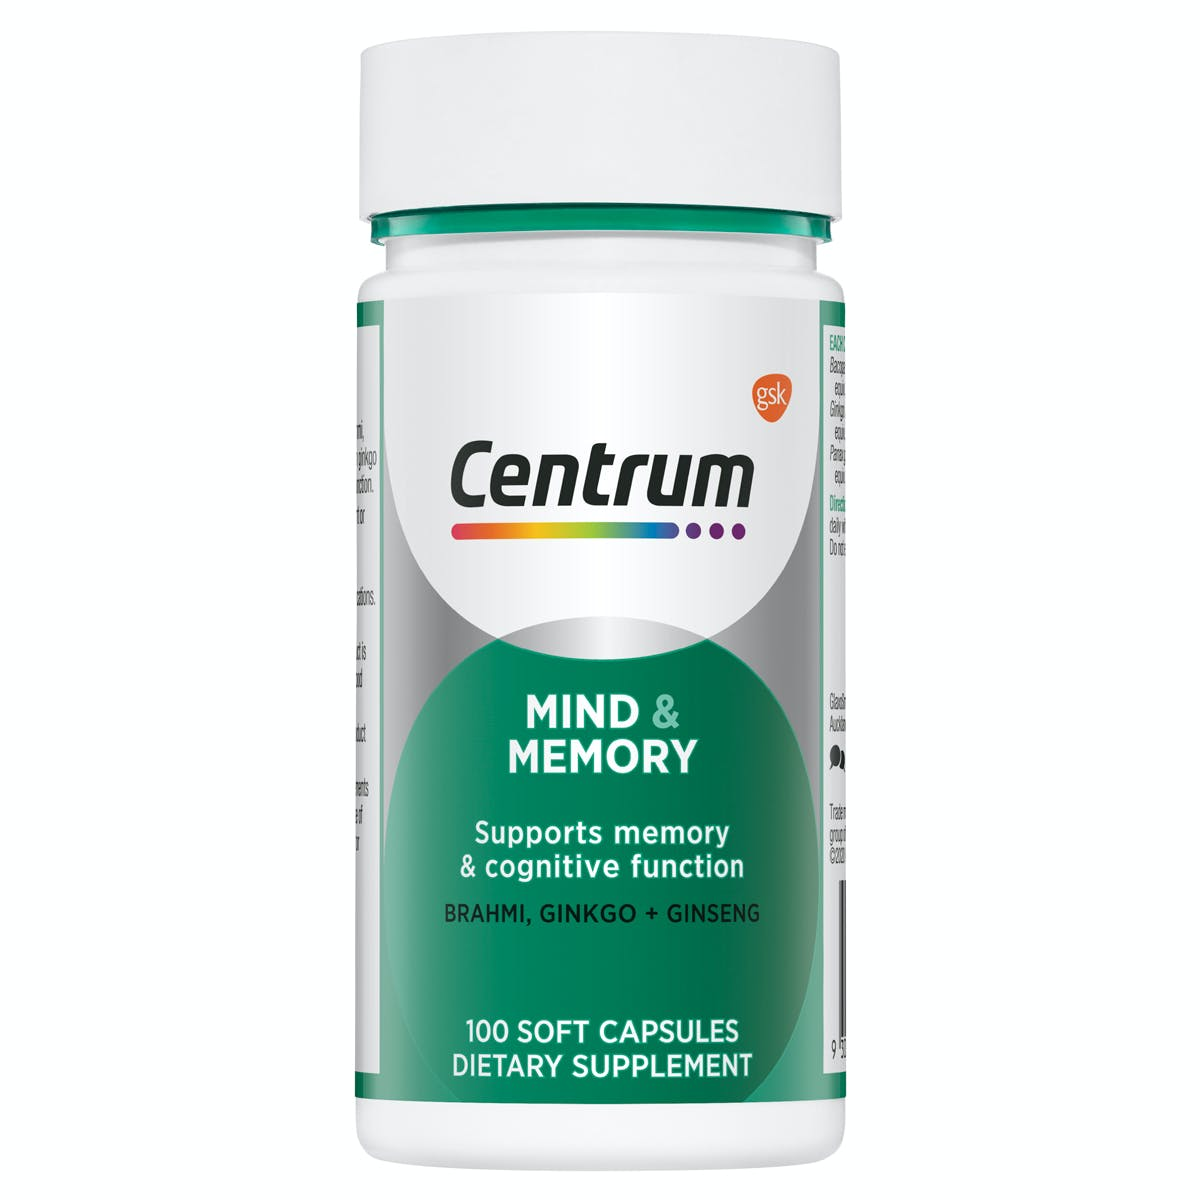 Bottle of Mind & Memory from the Centrum Benefits Blend (50 capsules).